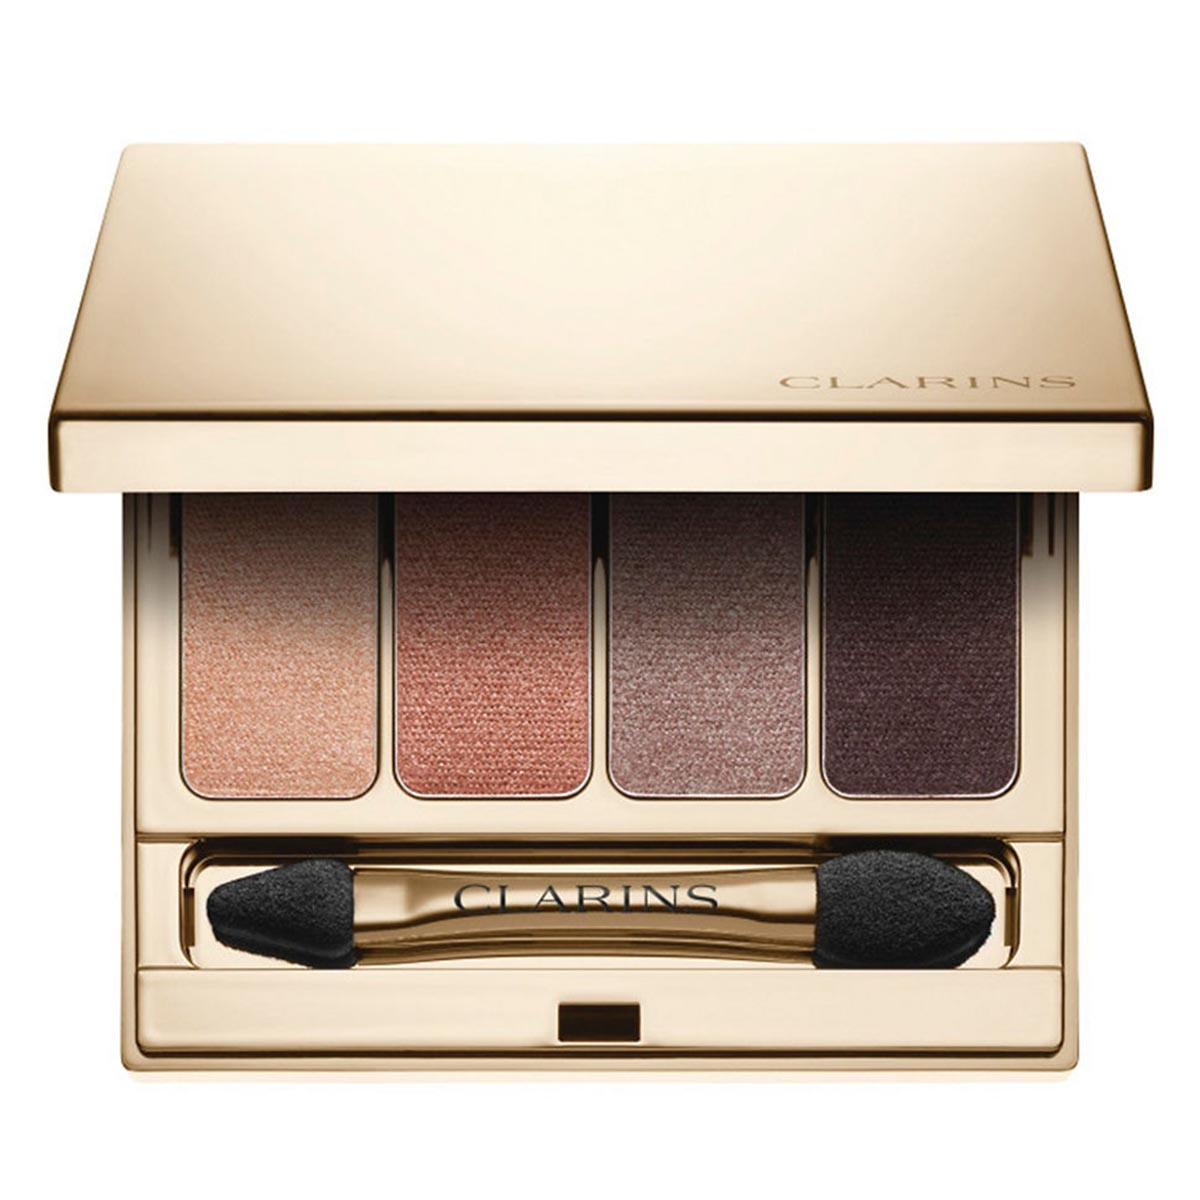 Clarins 4 colours eyeshadow palette 02 rosewood